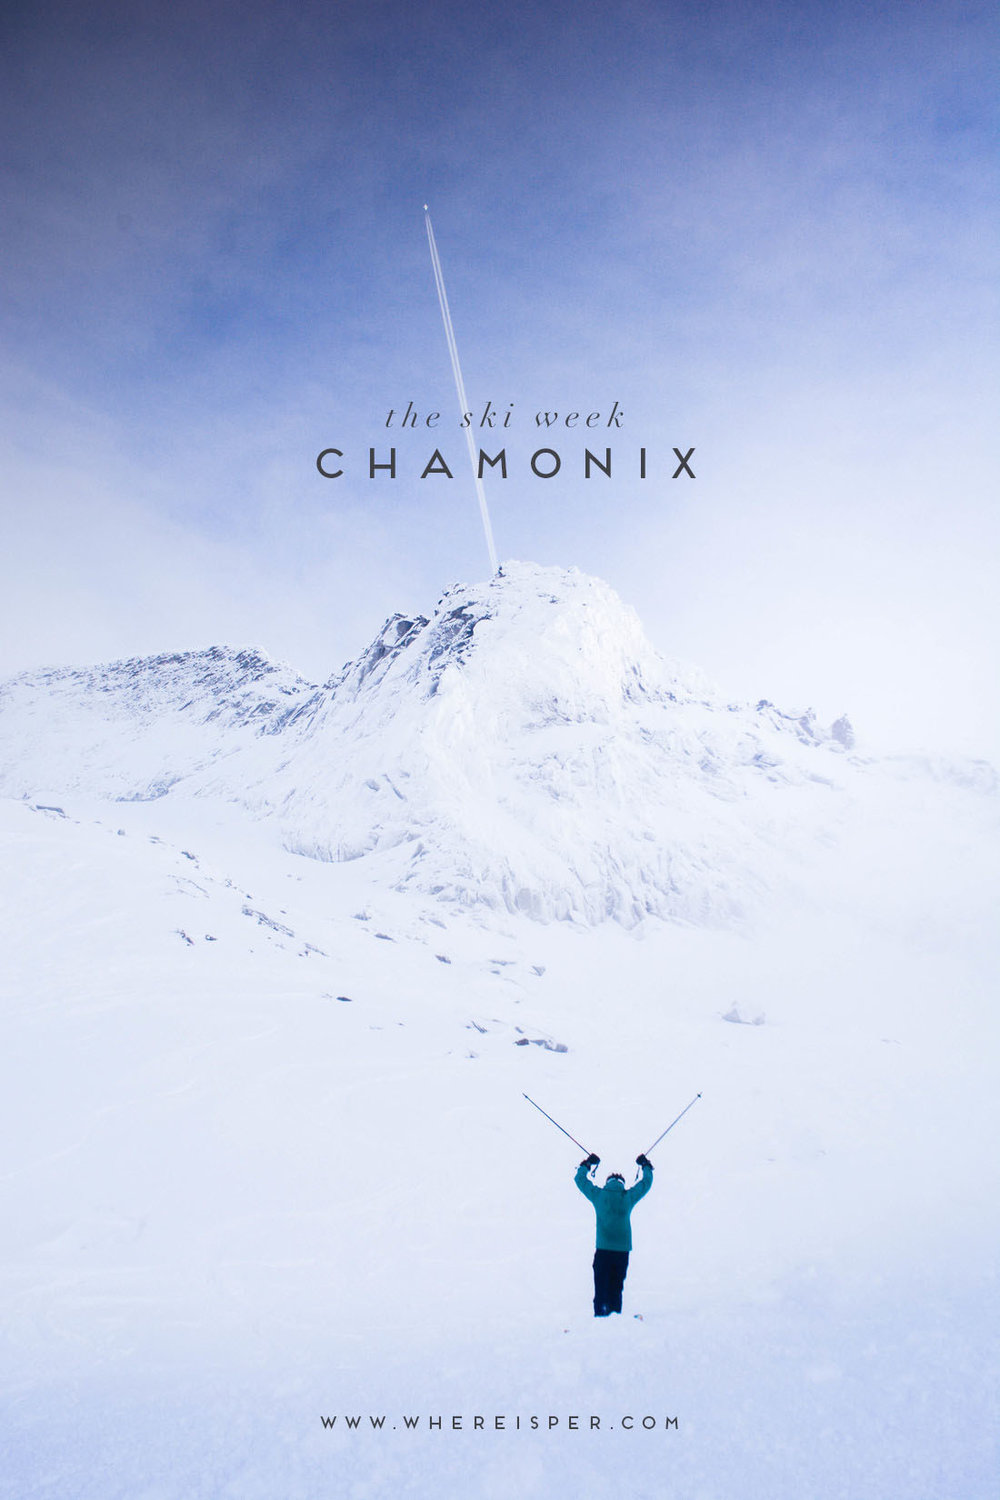 The Ski Week Chamonix